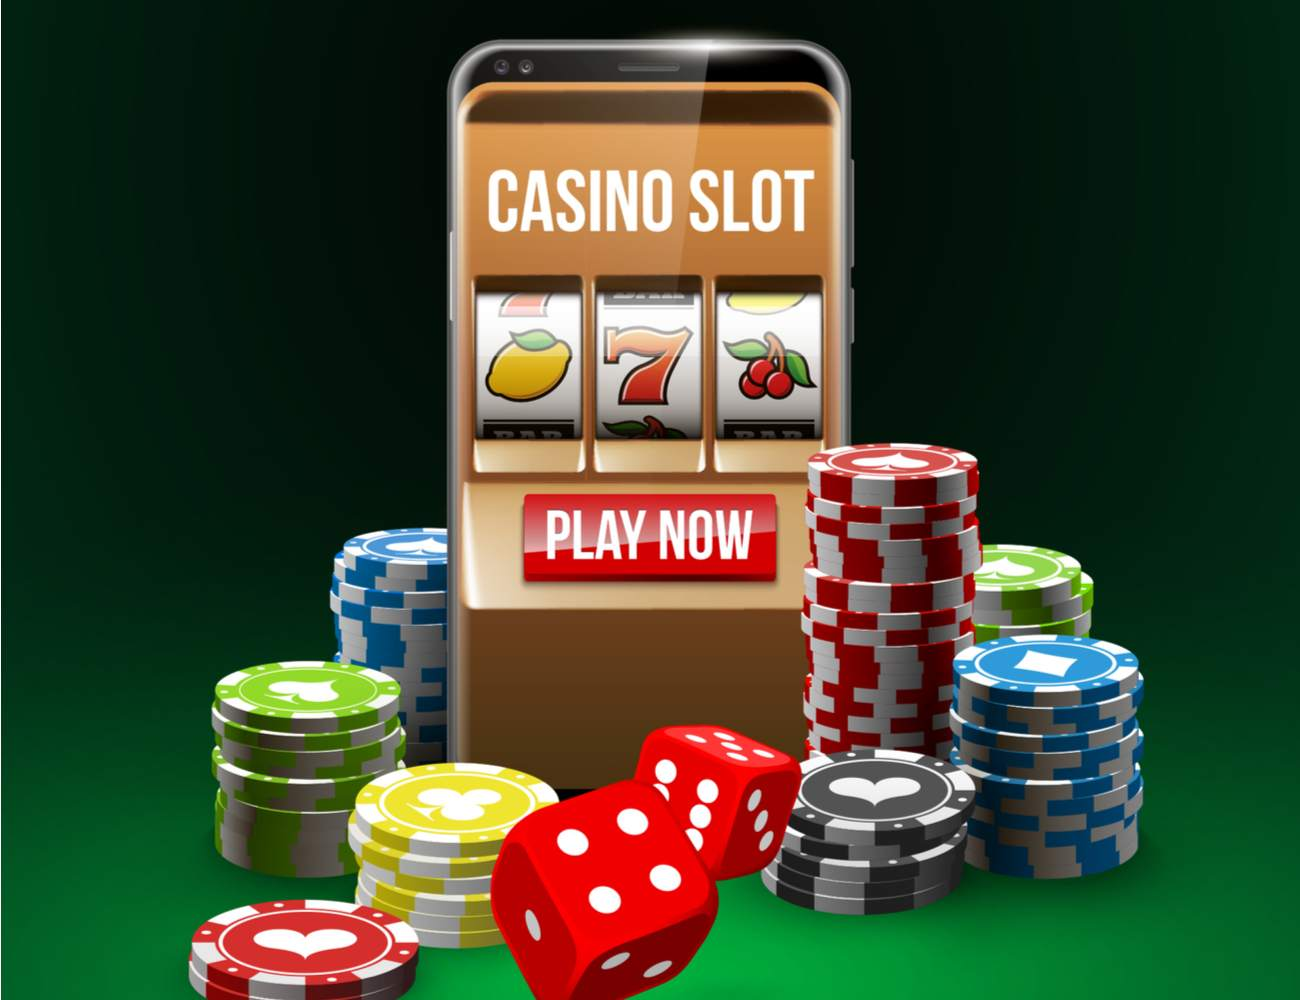 Casino slot game online iPhone with casino chips and dice below.